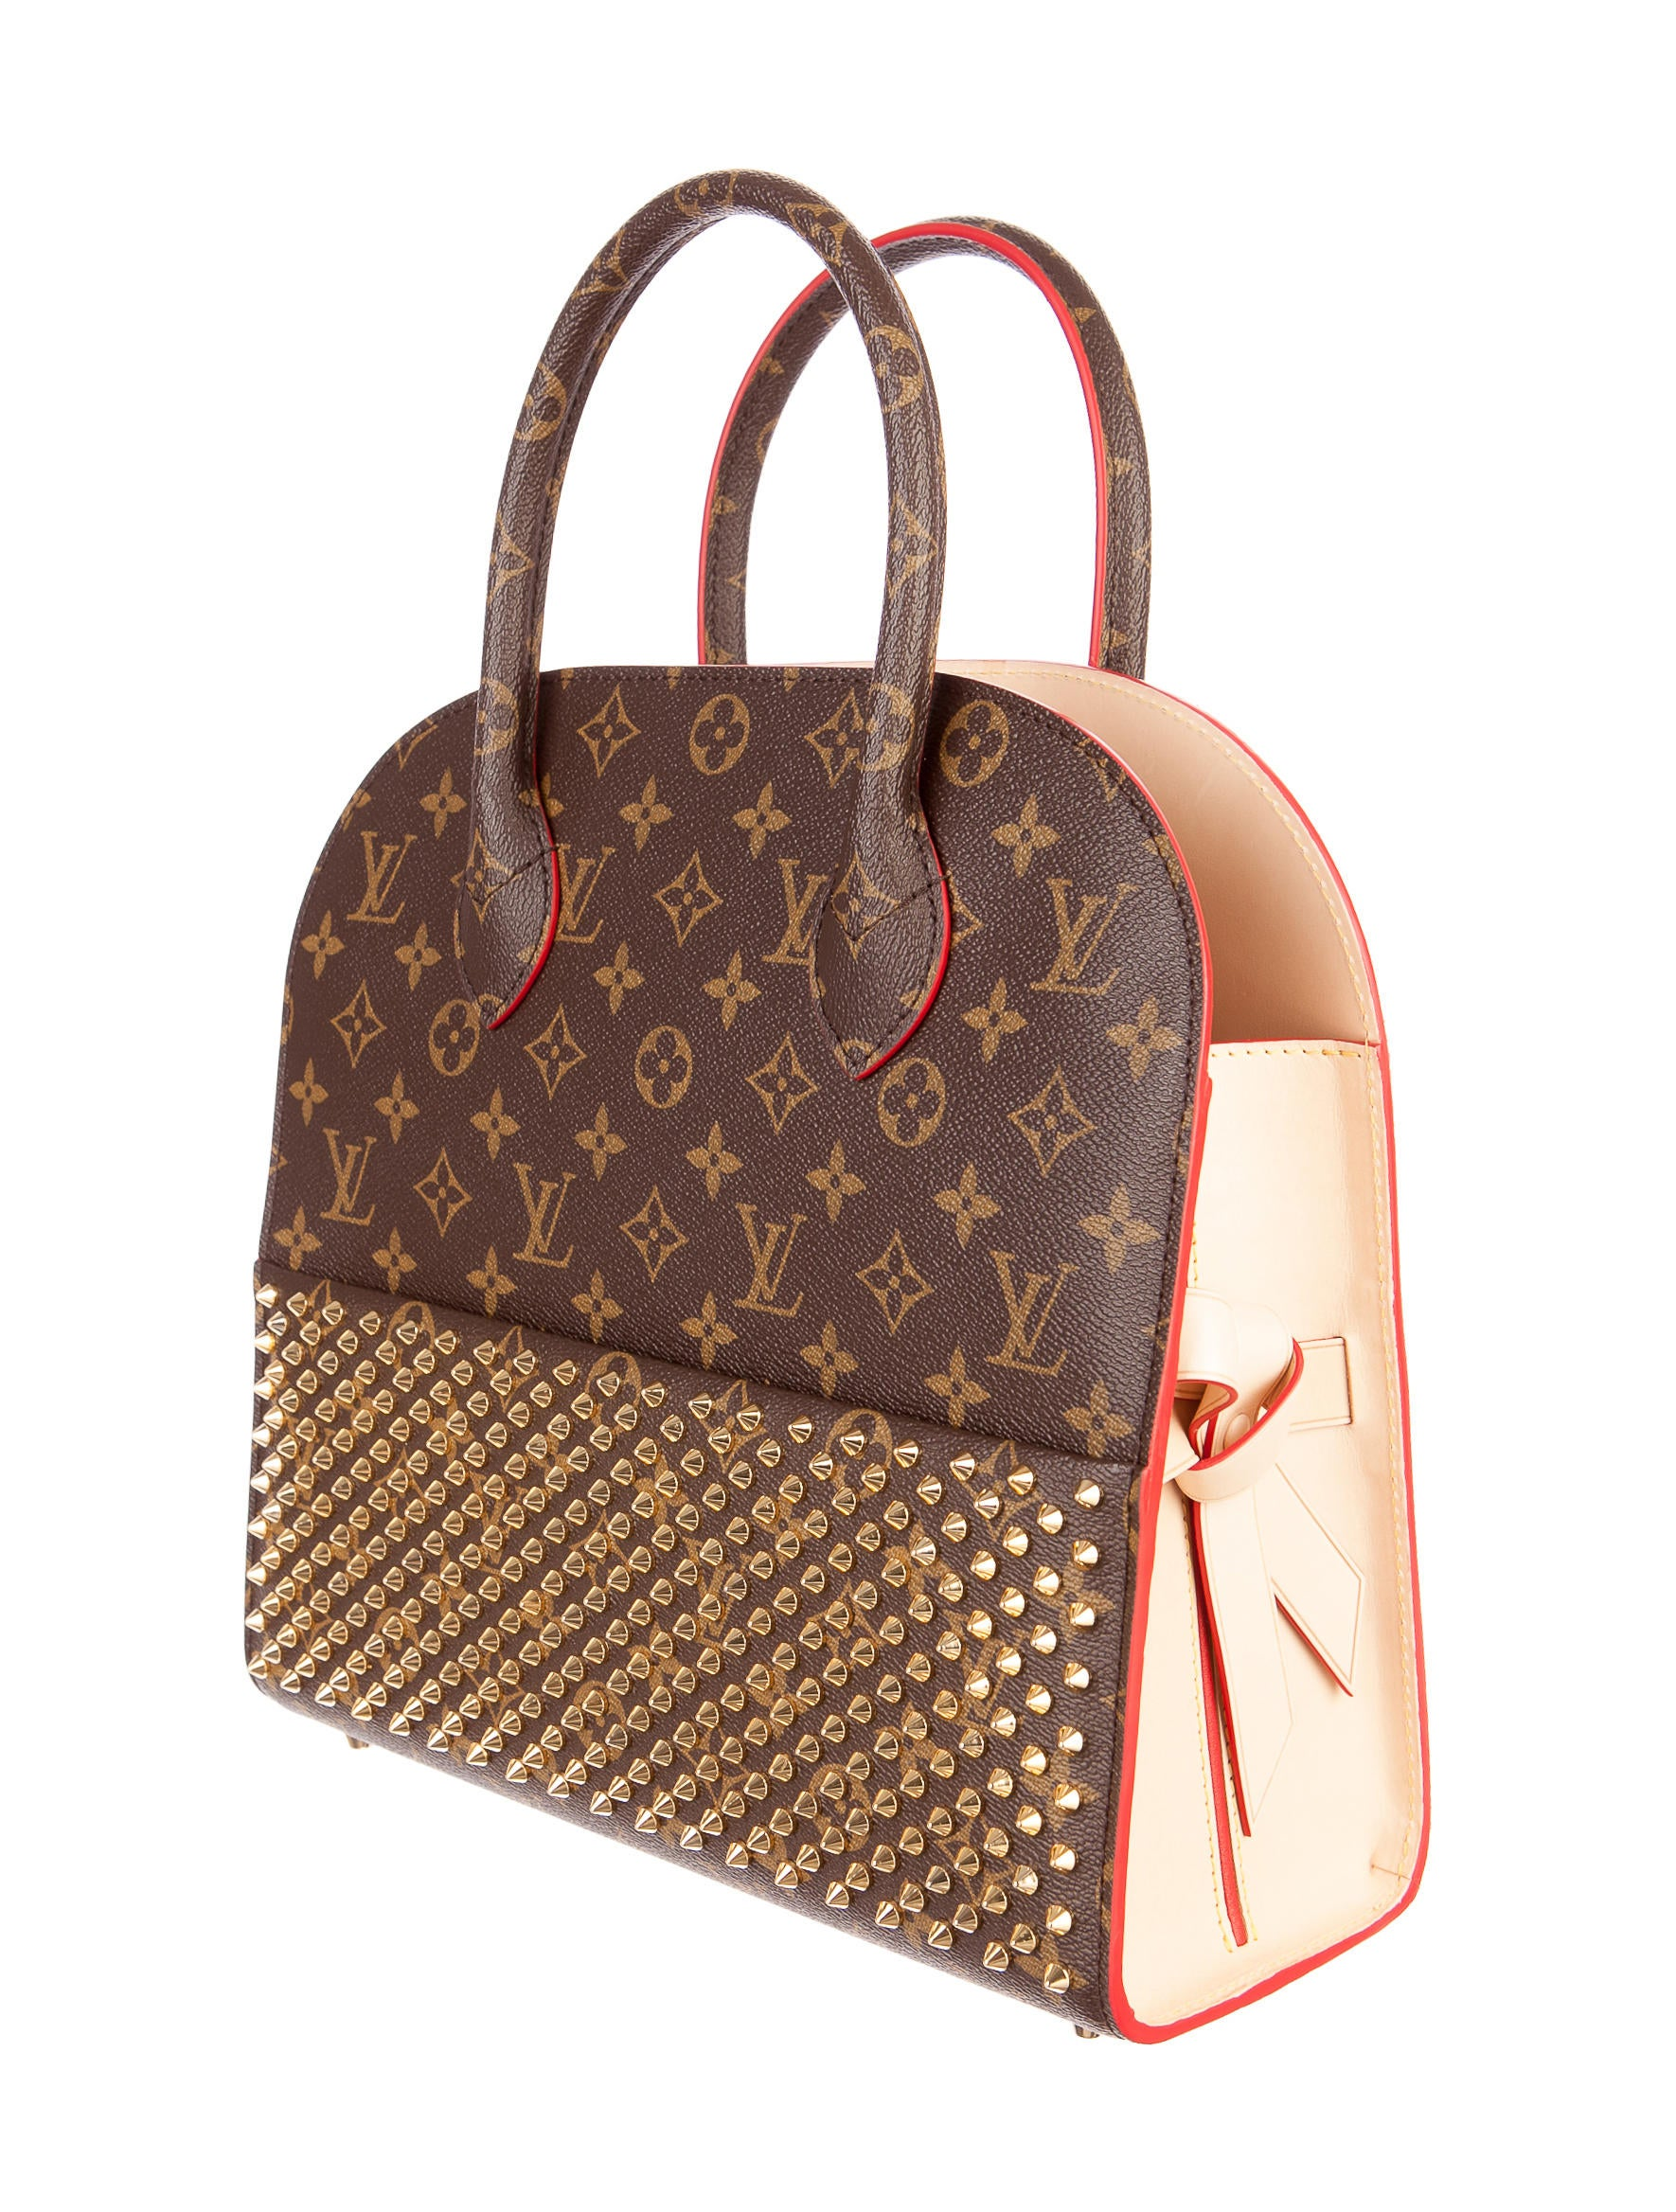 louis vuitton x christian louboutin shopping bag handbags lou35936 the realreal. Black Bedroom Furniture Sets. Home Design Ideas